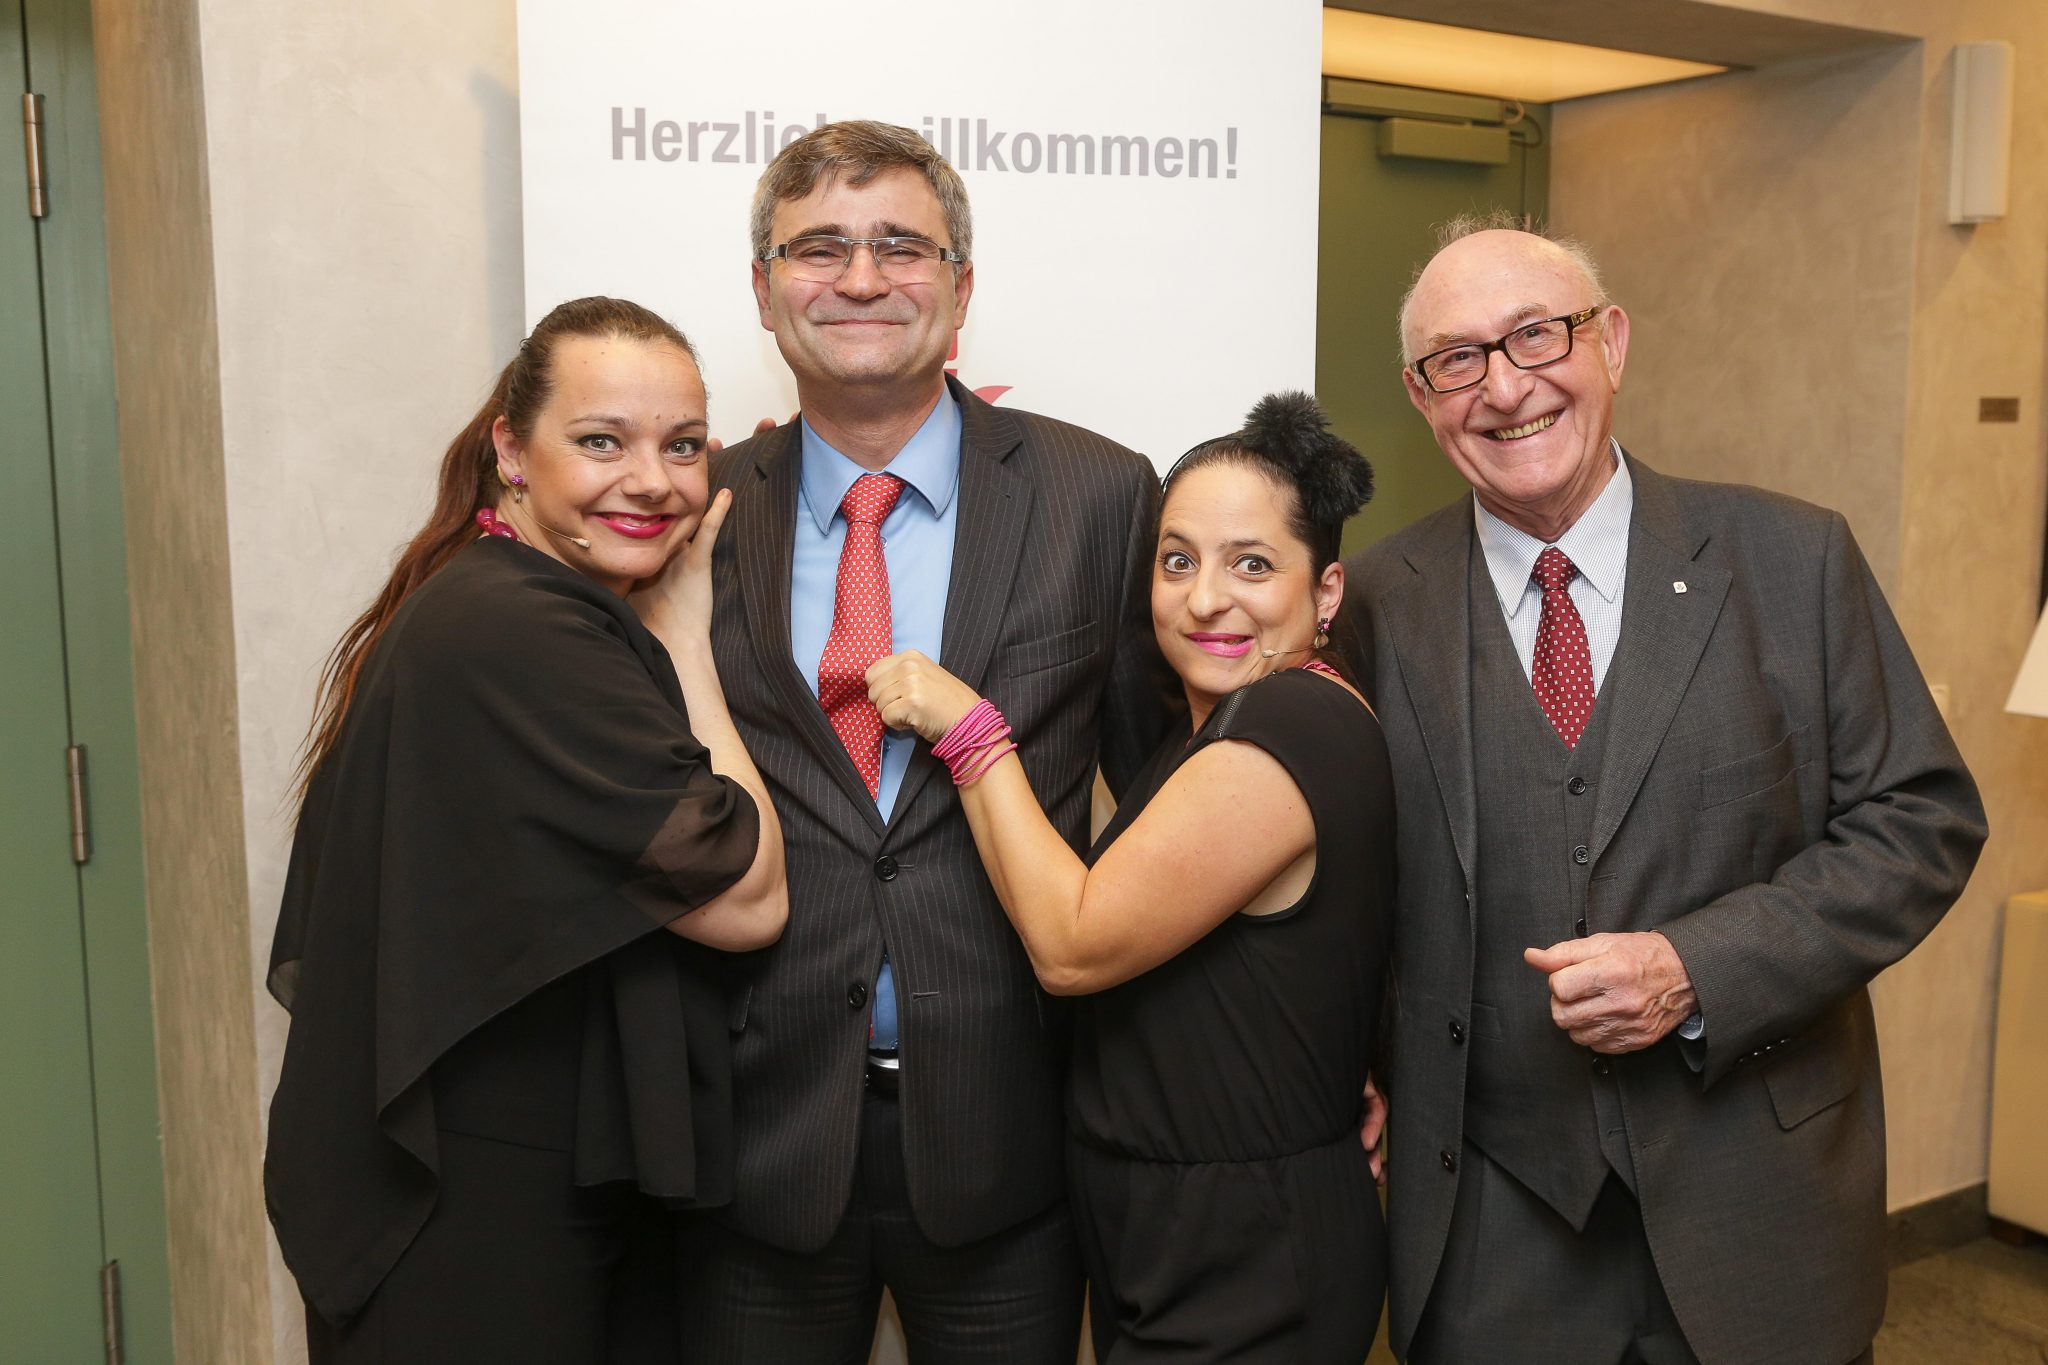 On the picture from the left: Artist Gudrun Nikodem-Eichenhardt, Peter Mišík (Ambassador of the Slovak Republic), Artist Caroline Athanasiadis & Günter Geyer (Managing Board Chairman, Wiener Städtische Versicherungsverein) © Wiener Städtische Versicherungsverein